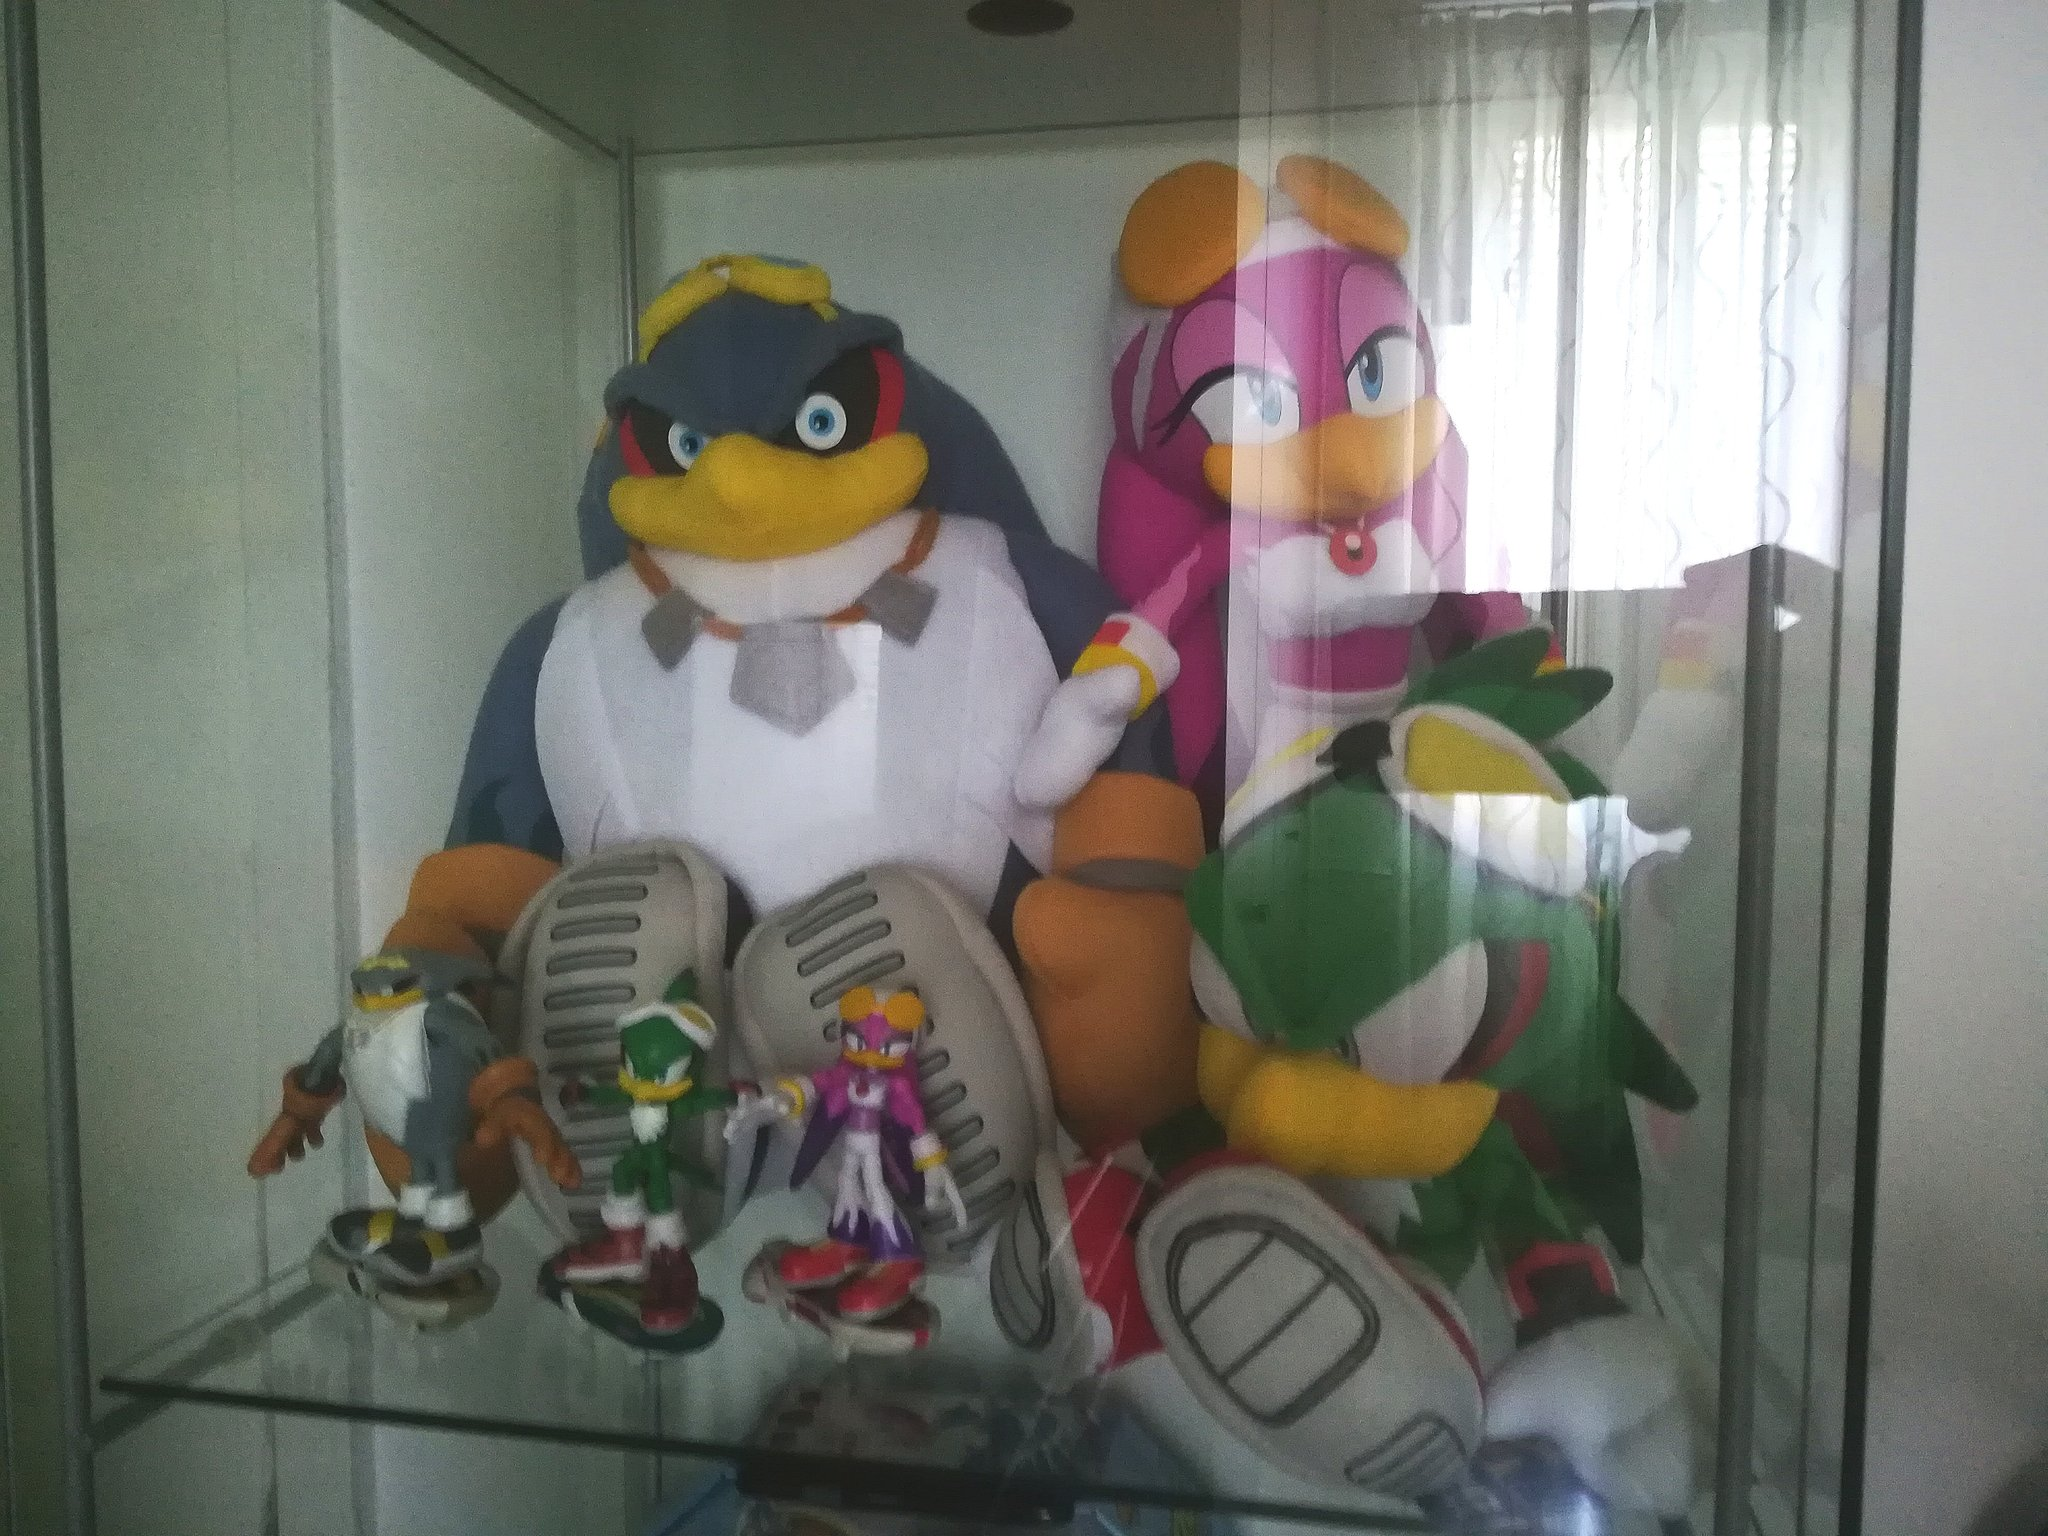 Gloria On Twitter Source Myself Lmfao Rogues Plushies Sonic Free Riders Rogues Figures Jet Rc Toy Sonic Riders Gc Ntsc J Sonic Riders Pc Zg Wii And Free Riders 360 European Italian Copies